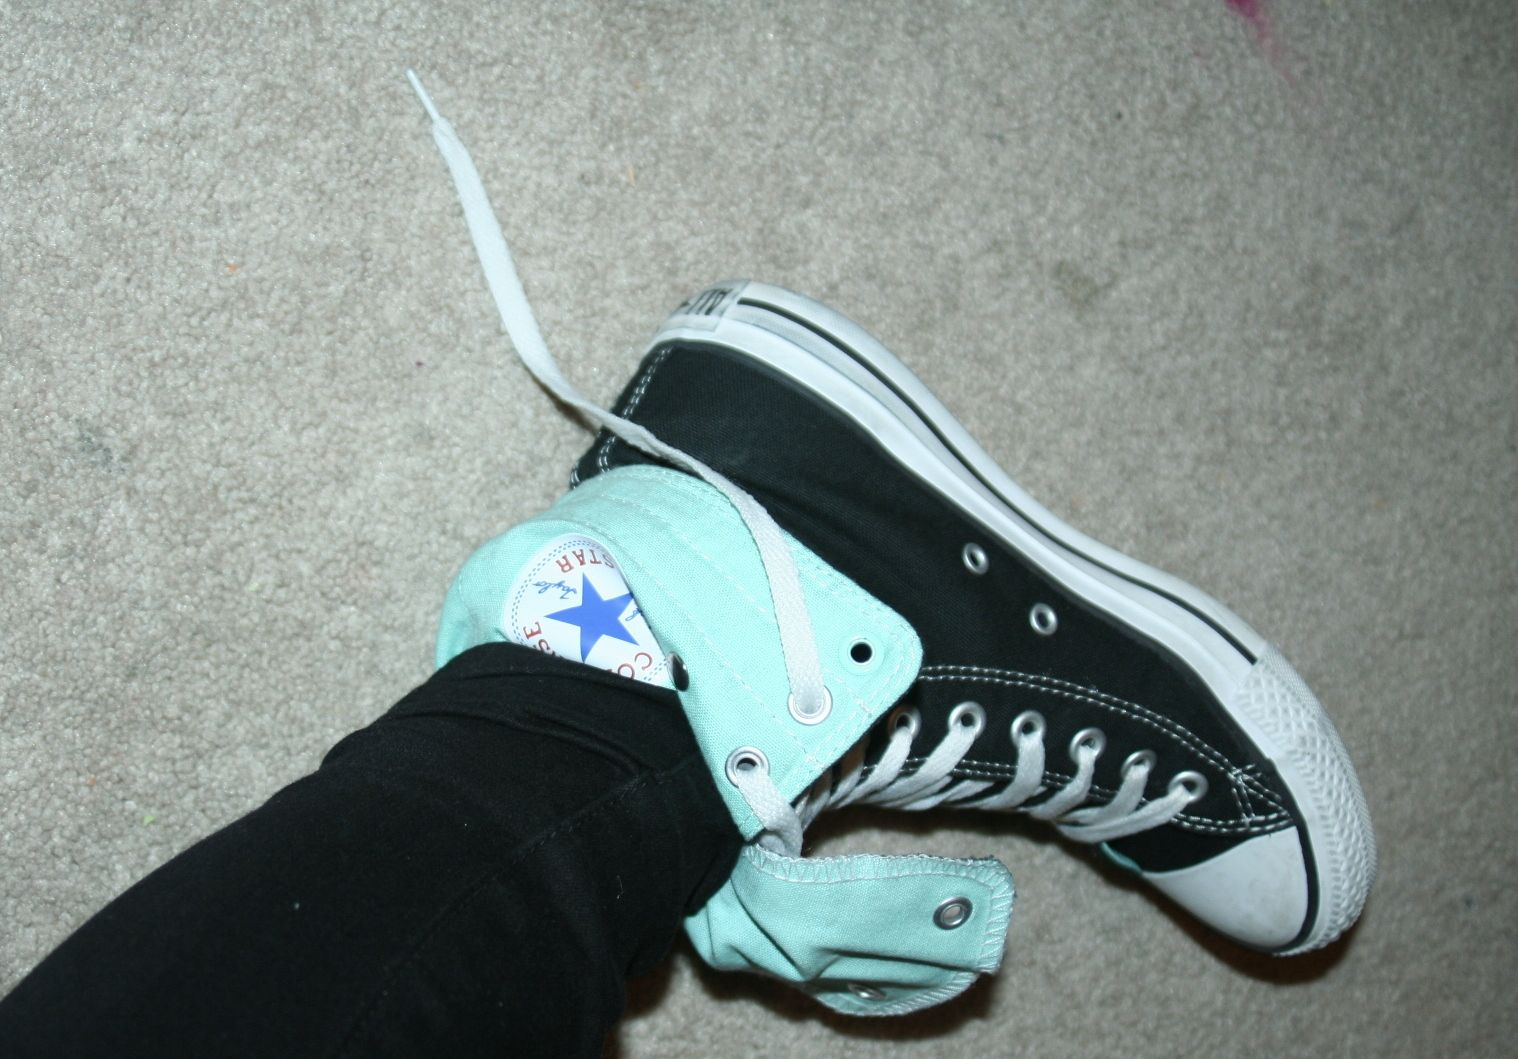 989b3c4dceec converse folded down untied and upside down high tops unlaced ...